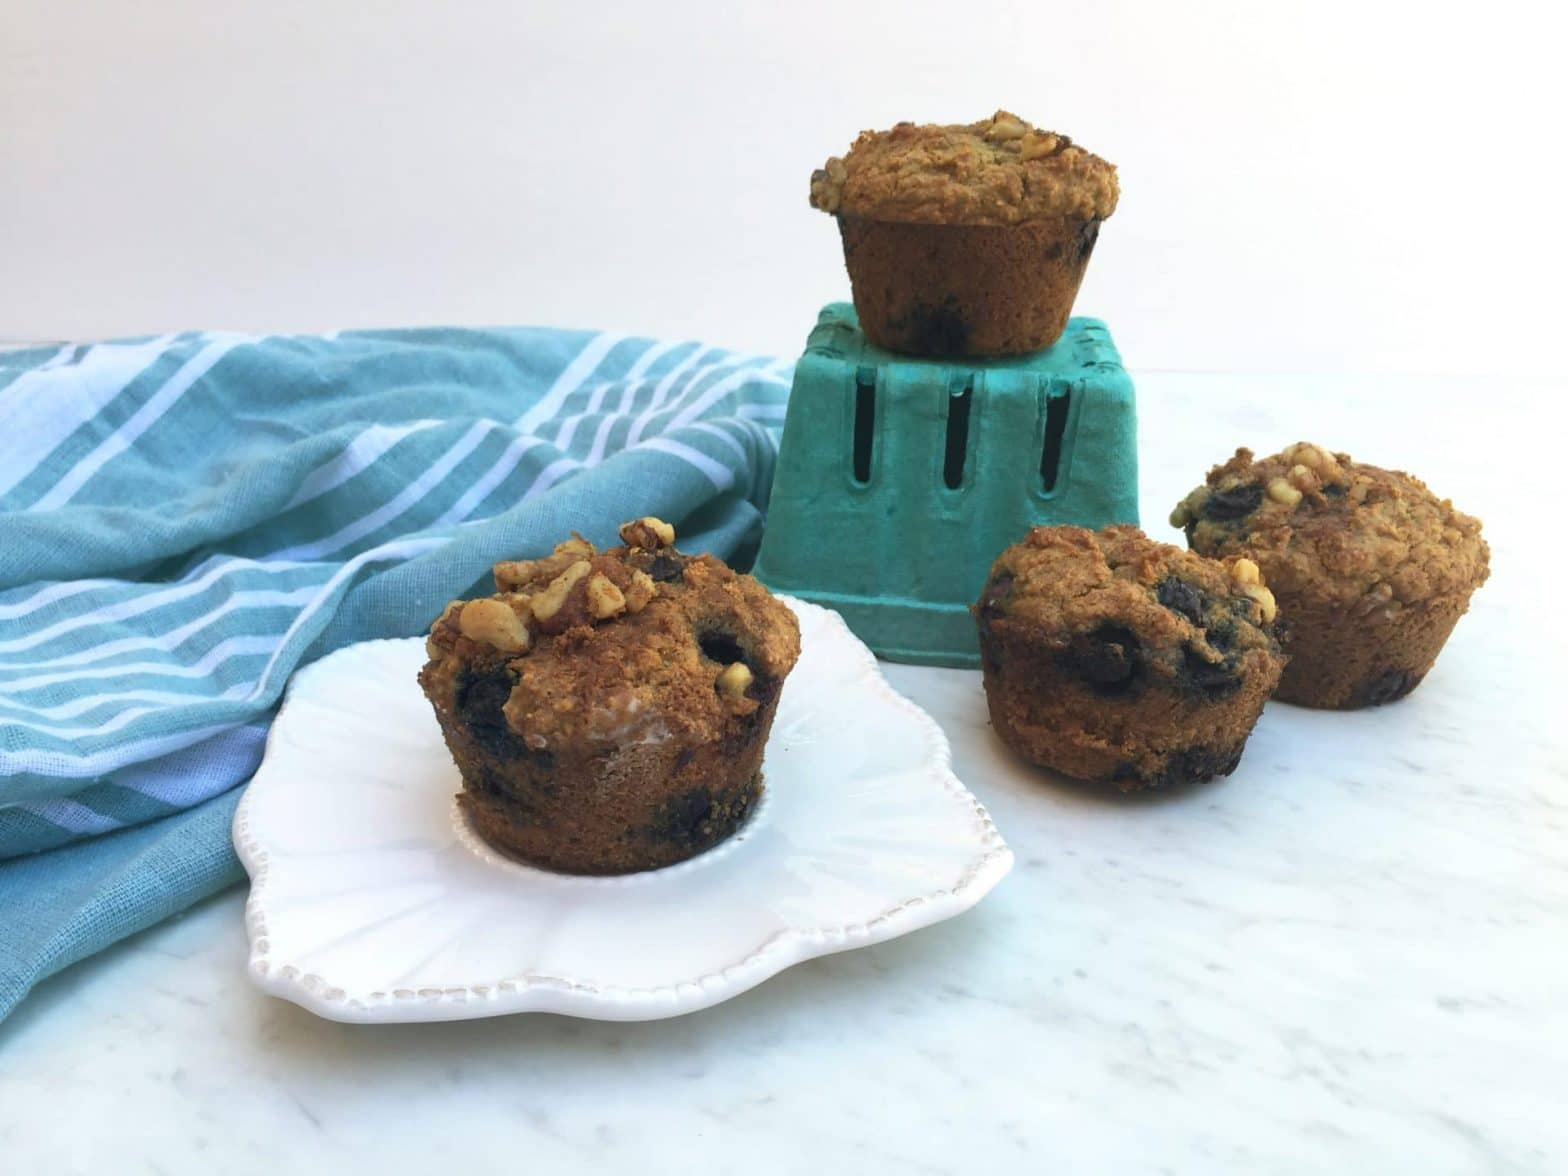 America's Test Kitchen Paleo Perfected: Blueberry Muffins Recipe